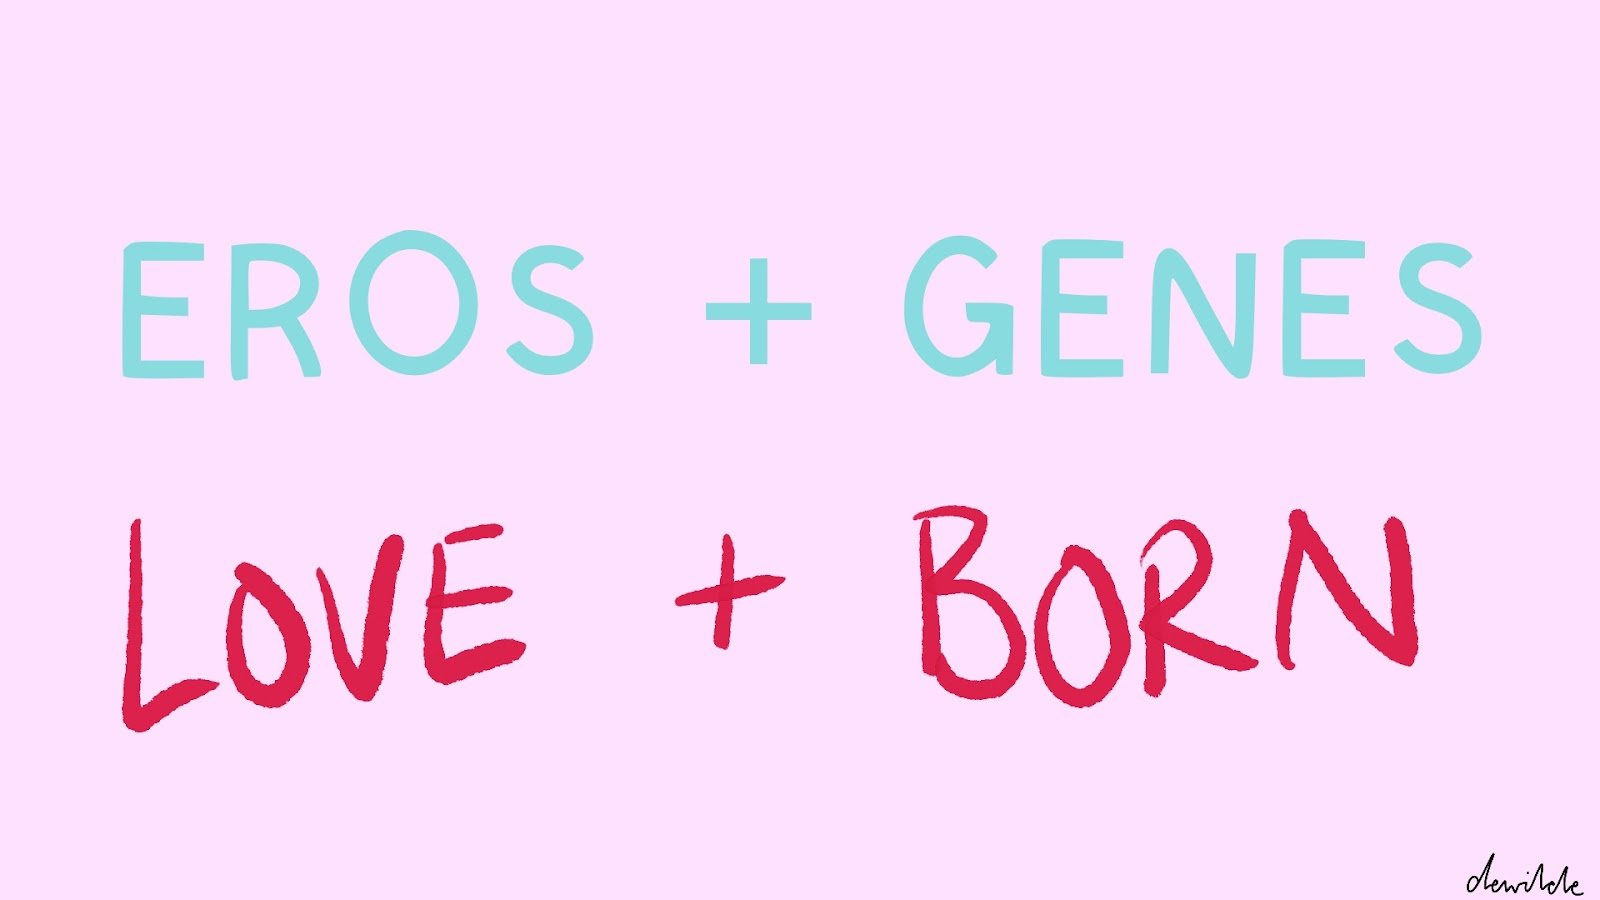 Image with Erogenous zones etymology. 'Eros' comes from Greek meaning 'love' and 'genes' mean 'born'. These are your love-producing zones.